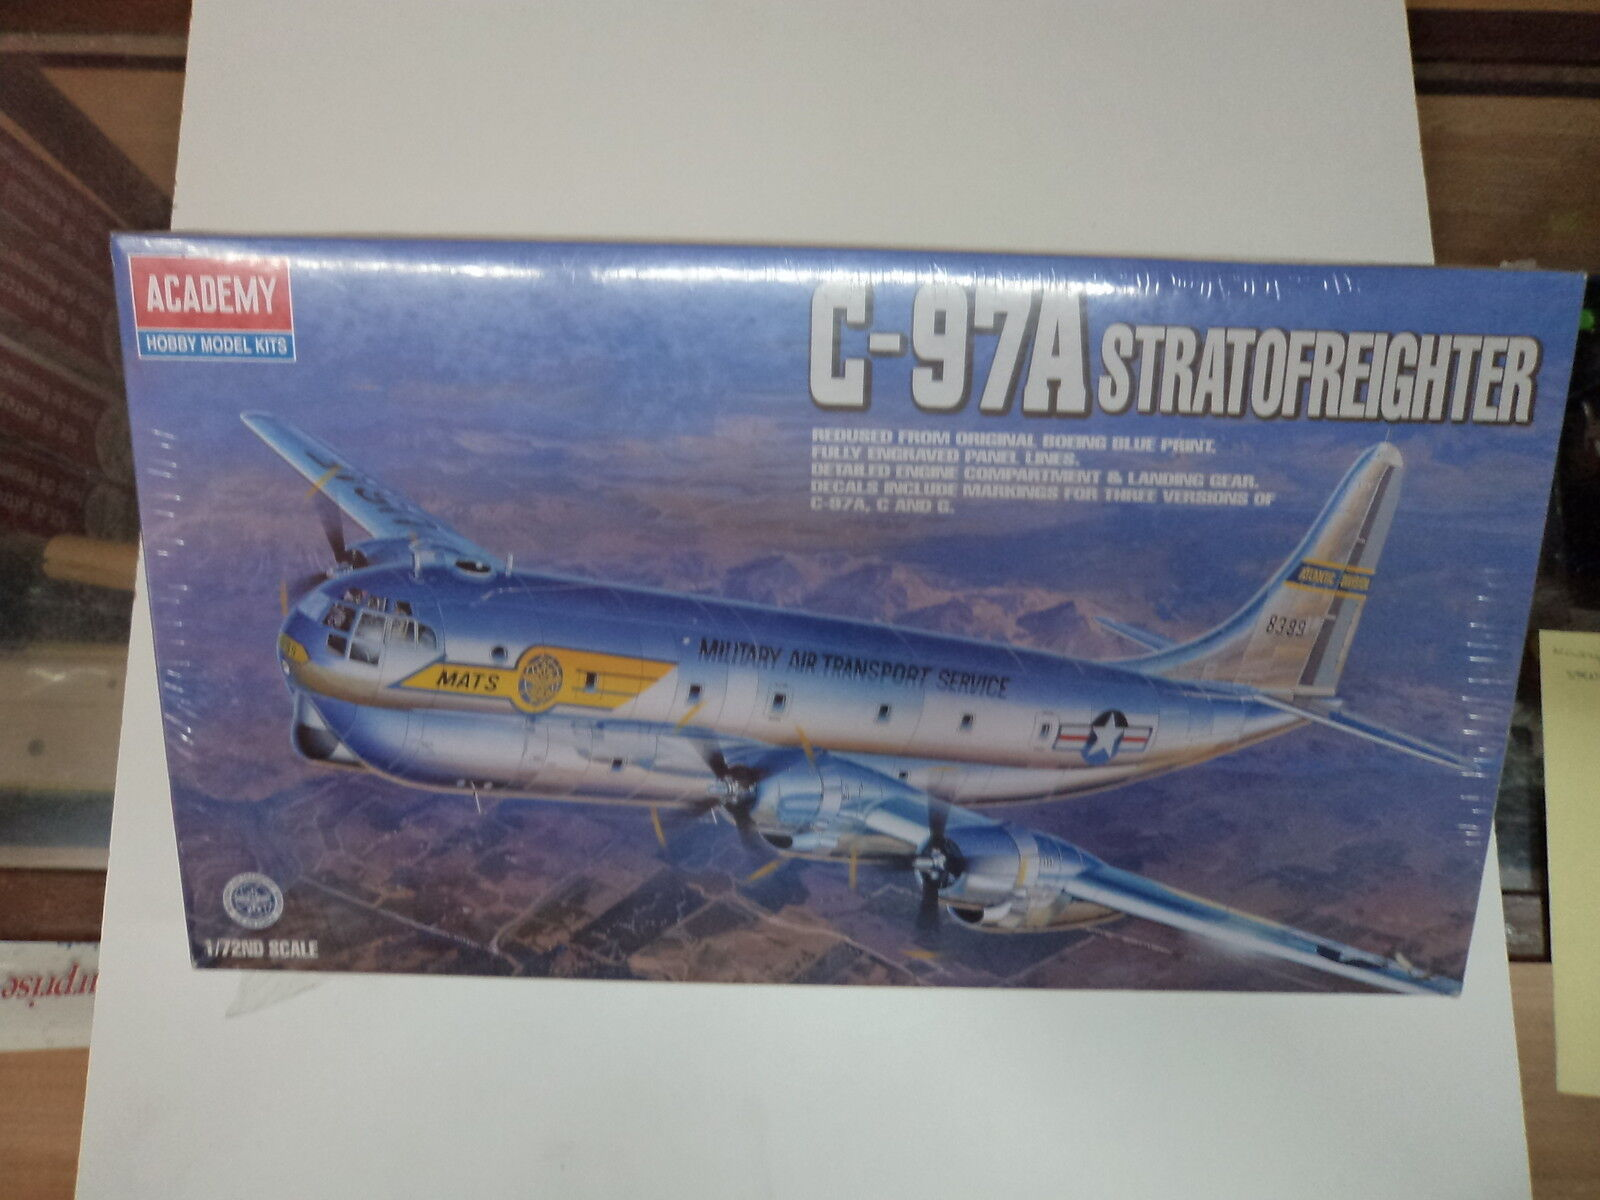 ACADEMY 1604 C-97A STRATOFREIGHTER 1 72 KIT